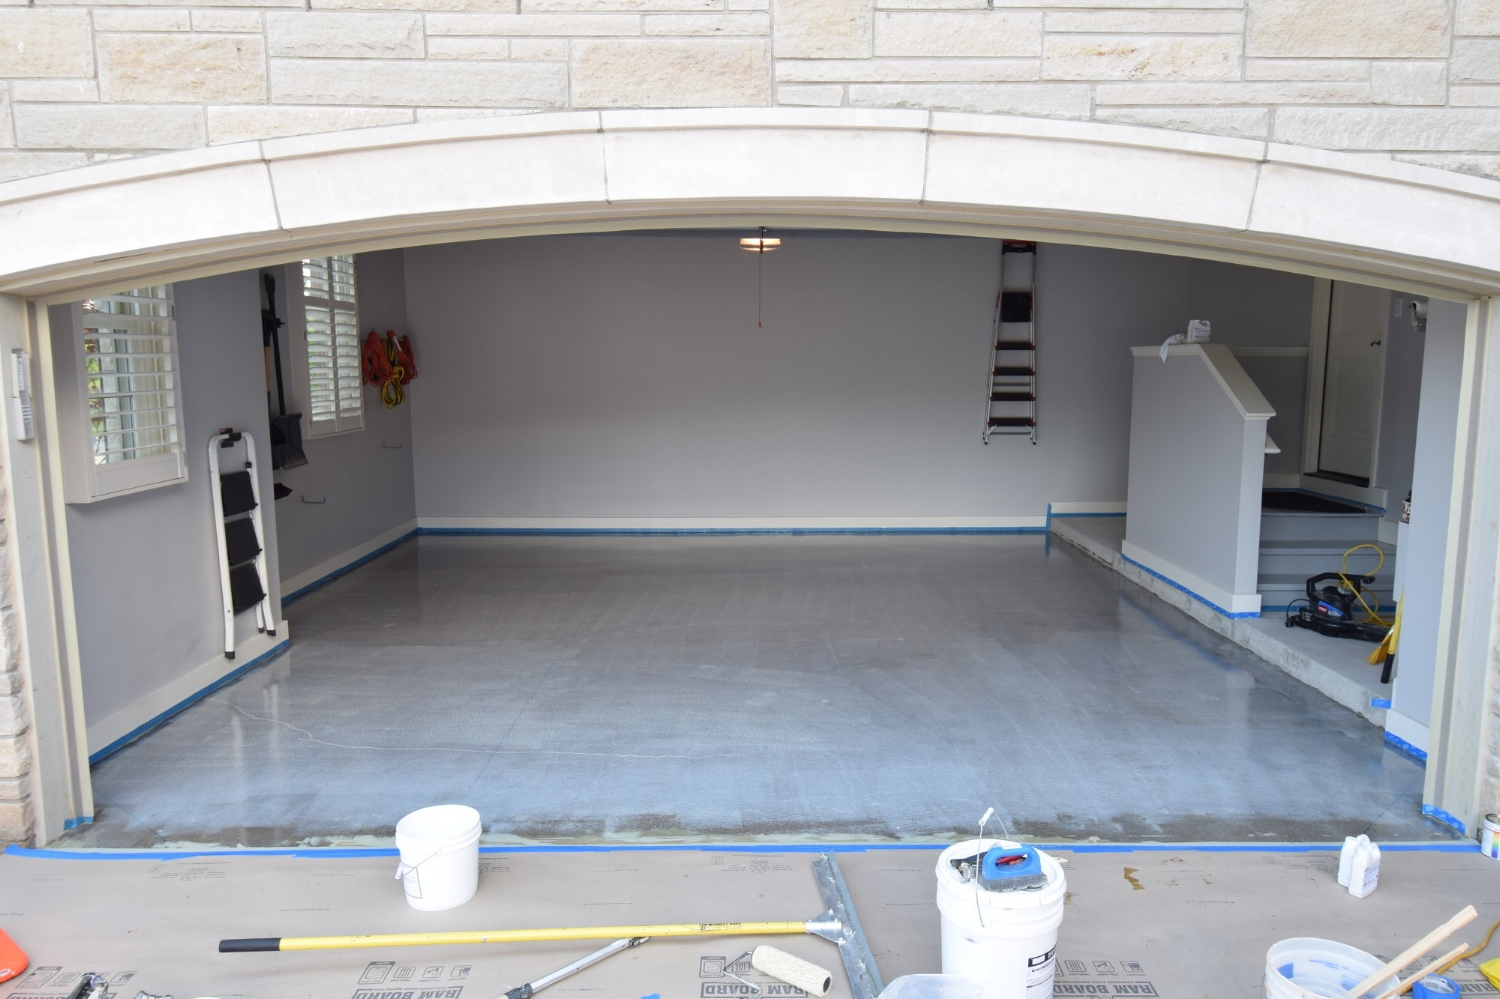 Garage Concrete Floor During Application Of Moisture Barrier Primer Coating